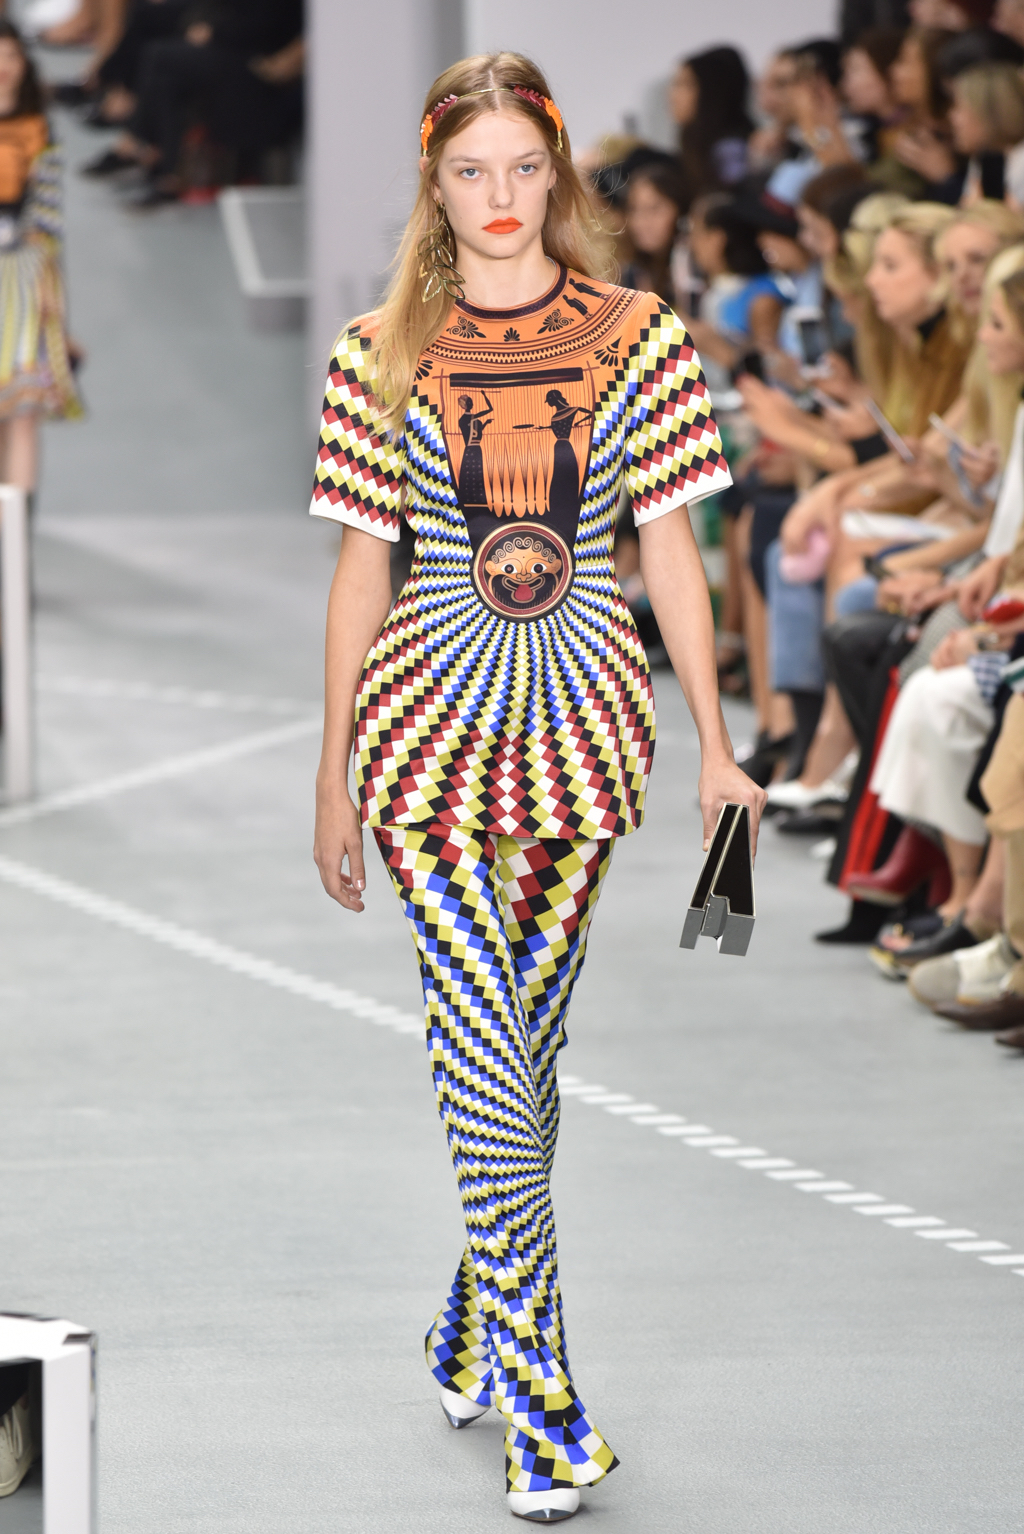 LFW-SS17-Mary-Katrantzou-Krisztian-Pinter-the-upcoming-1